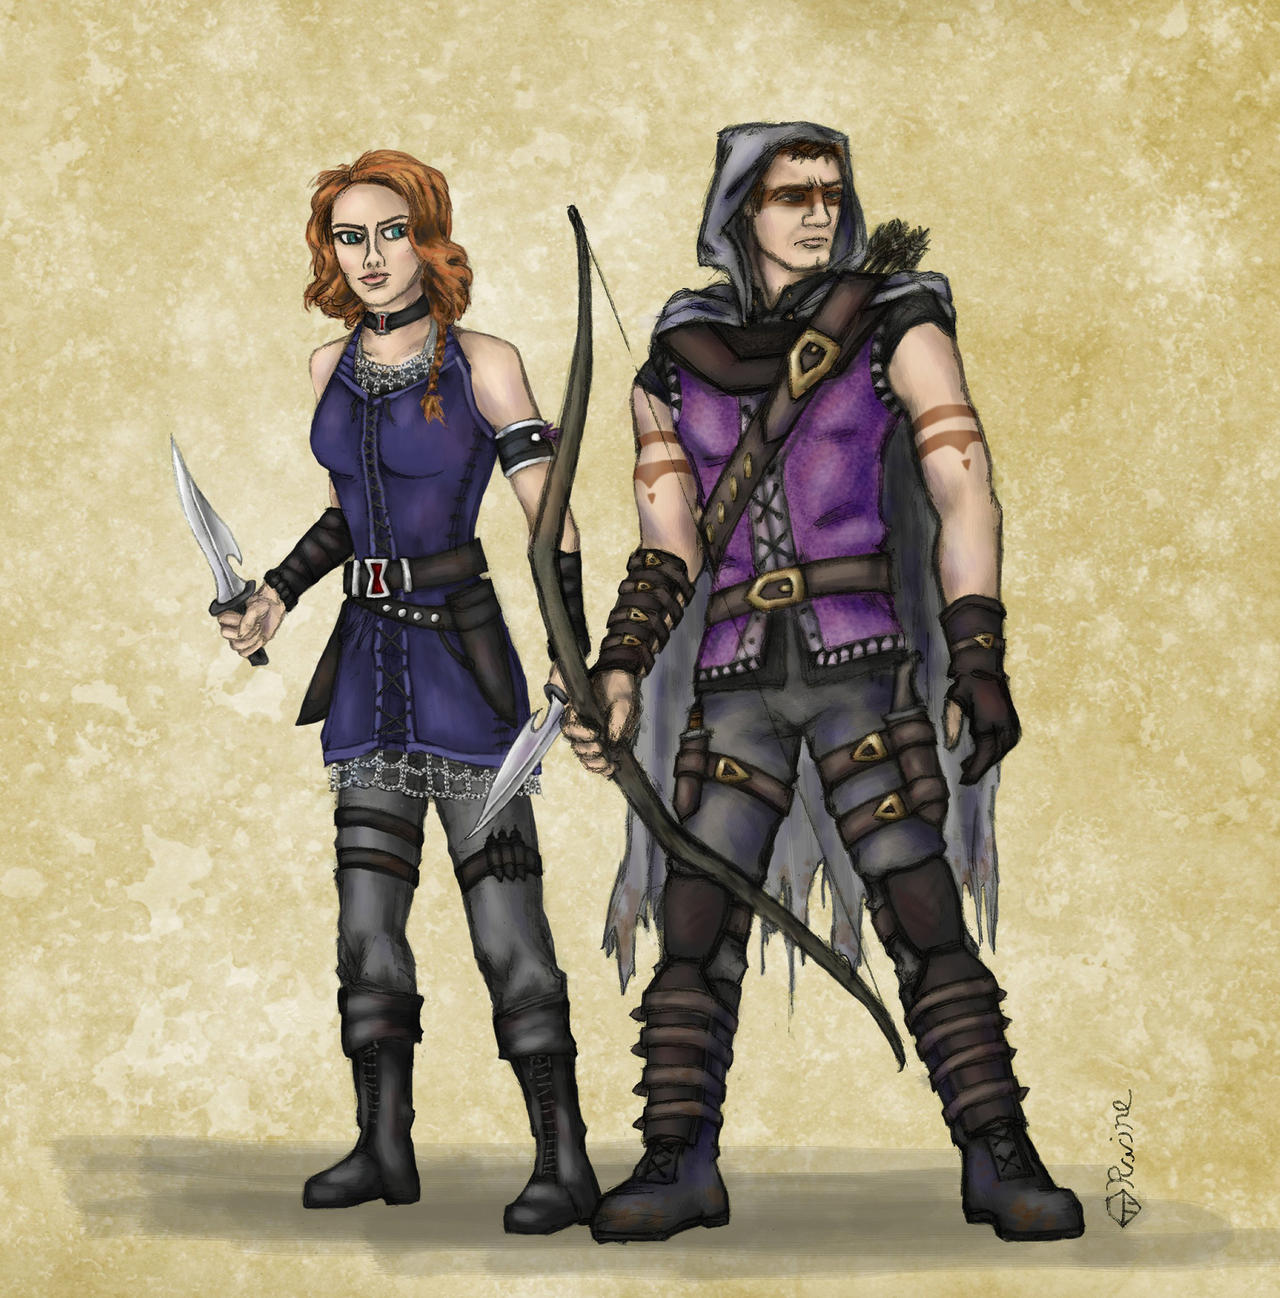 Képek - Page 6 Dnd_avengers___hawkeye_and_black_widow_by_mcat711-d626ps6